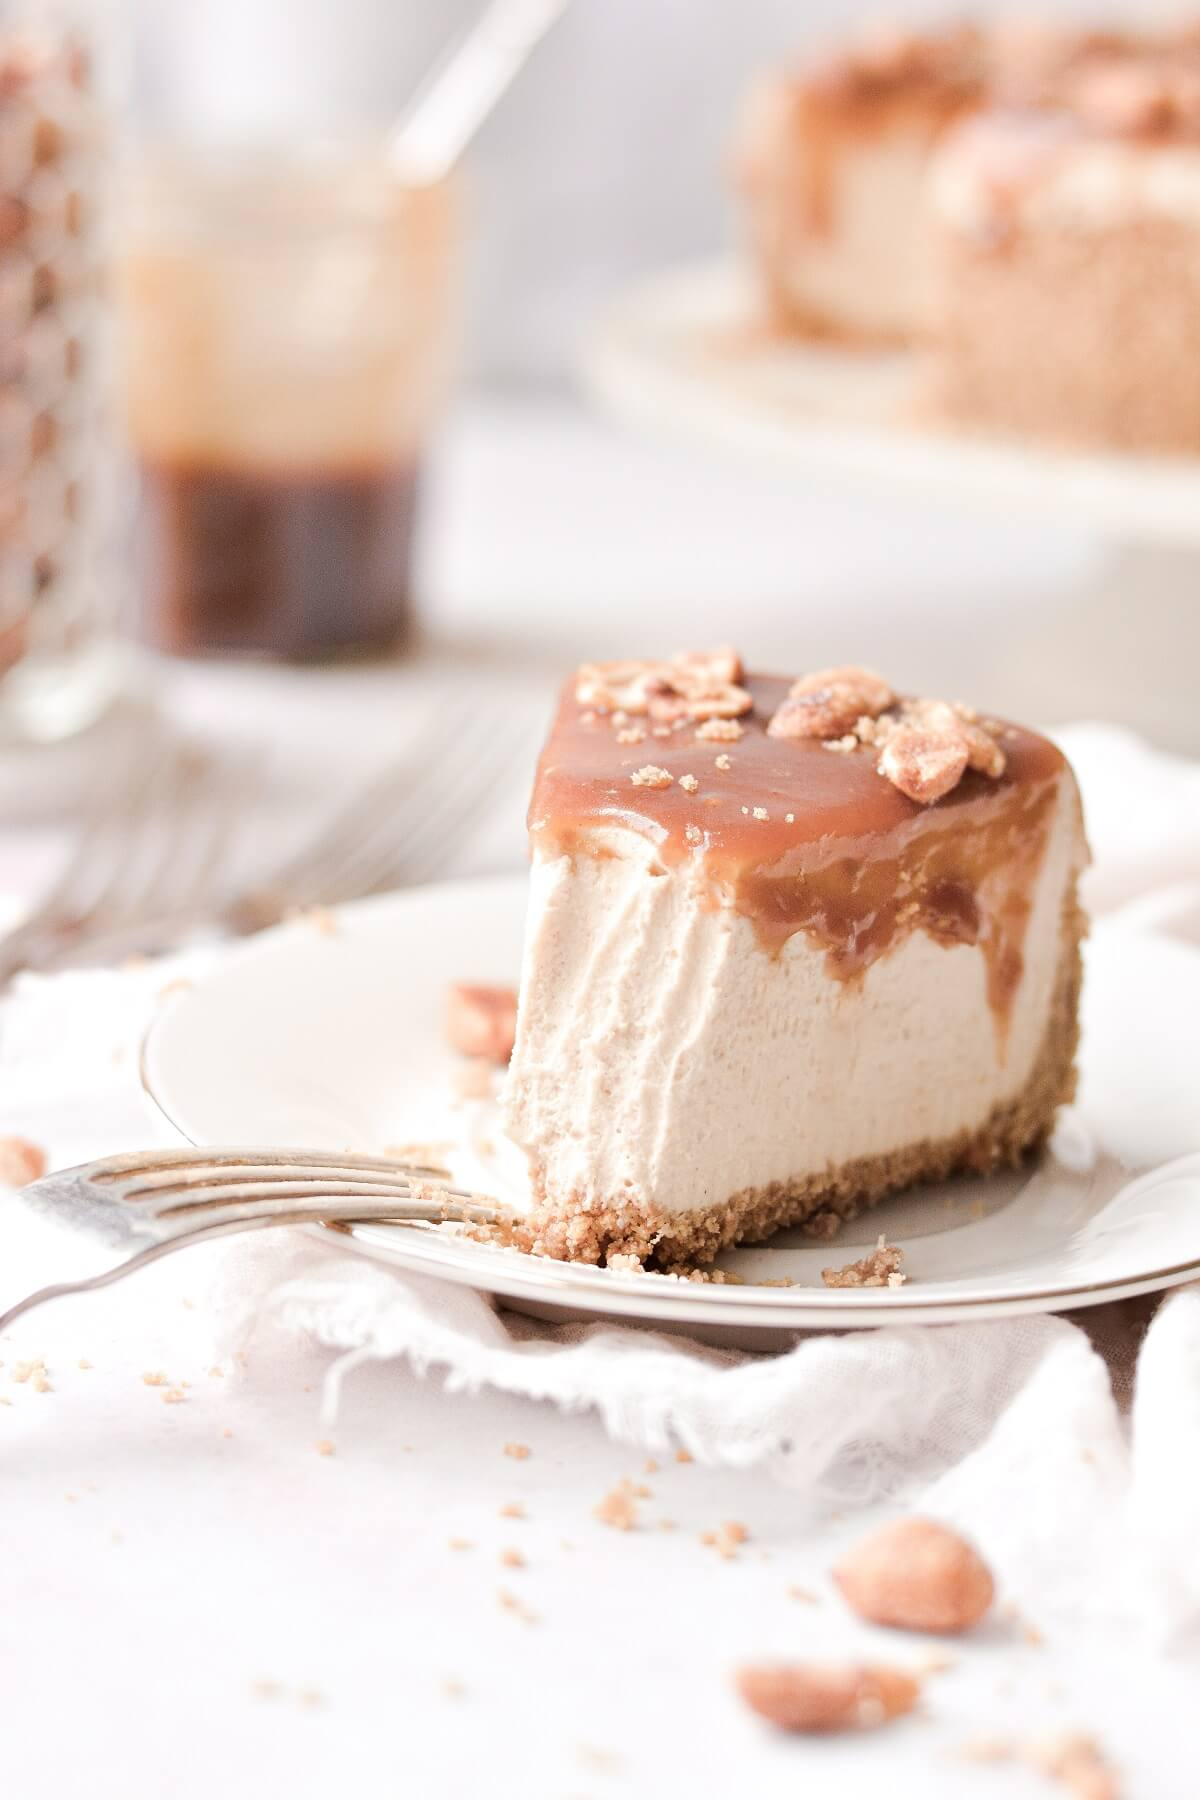 A slice of peanut butter cheesecake with a bite taken.